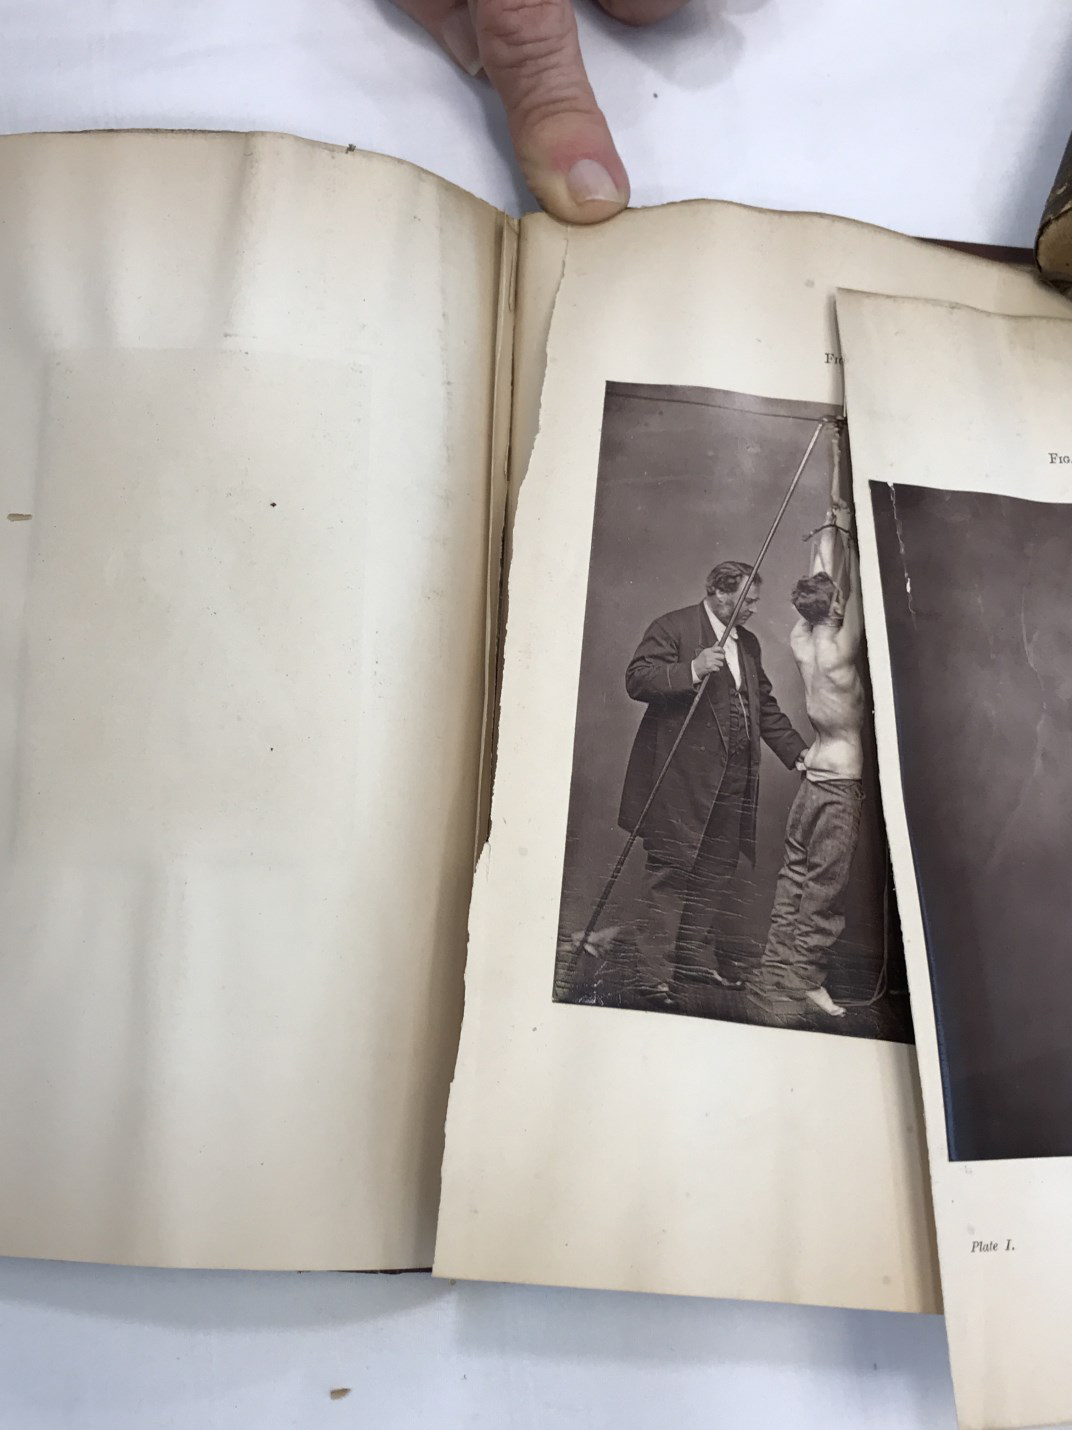 repairs needed to photographic illustrations and torn pages